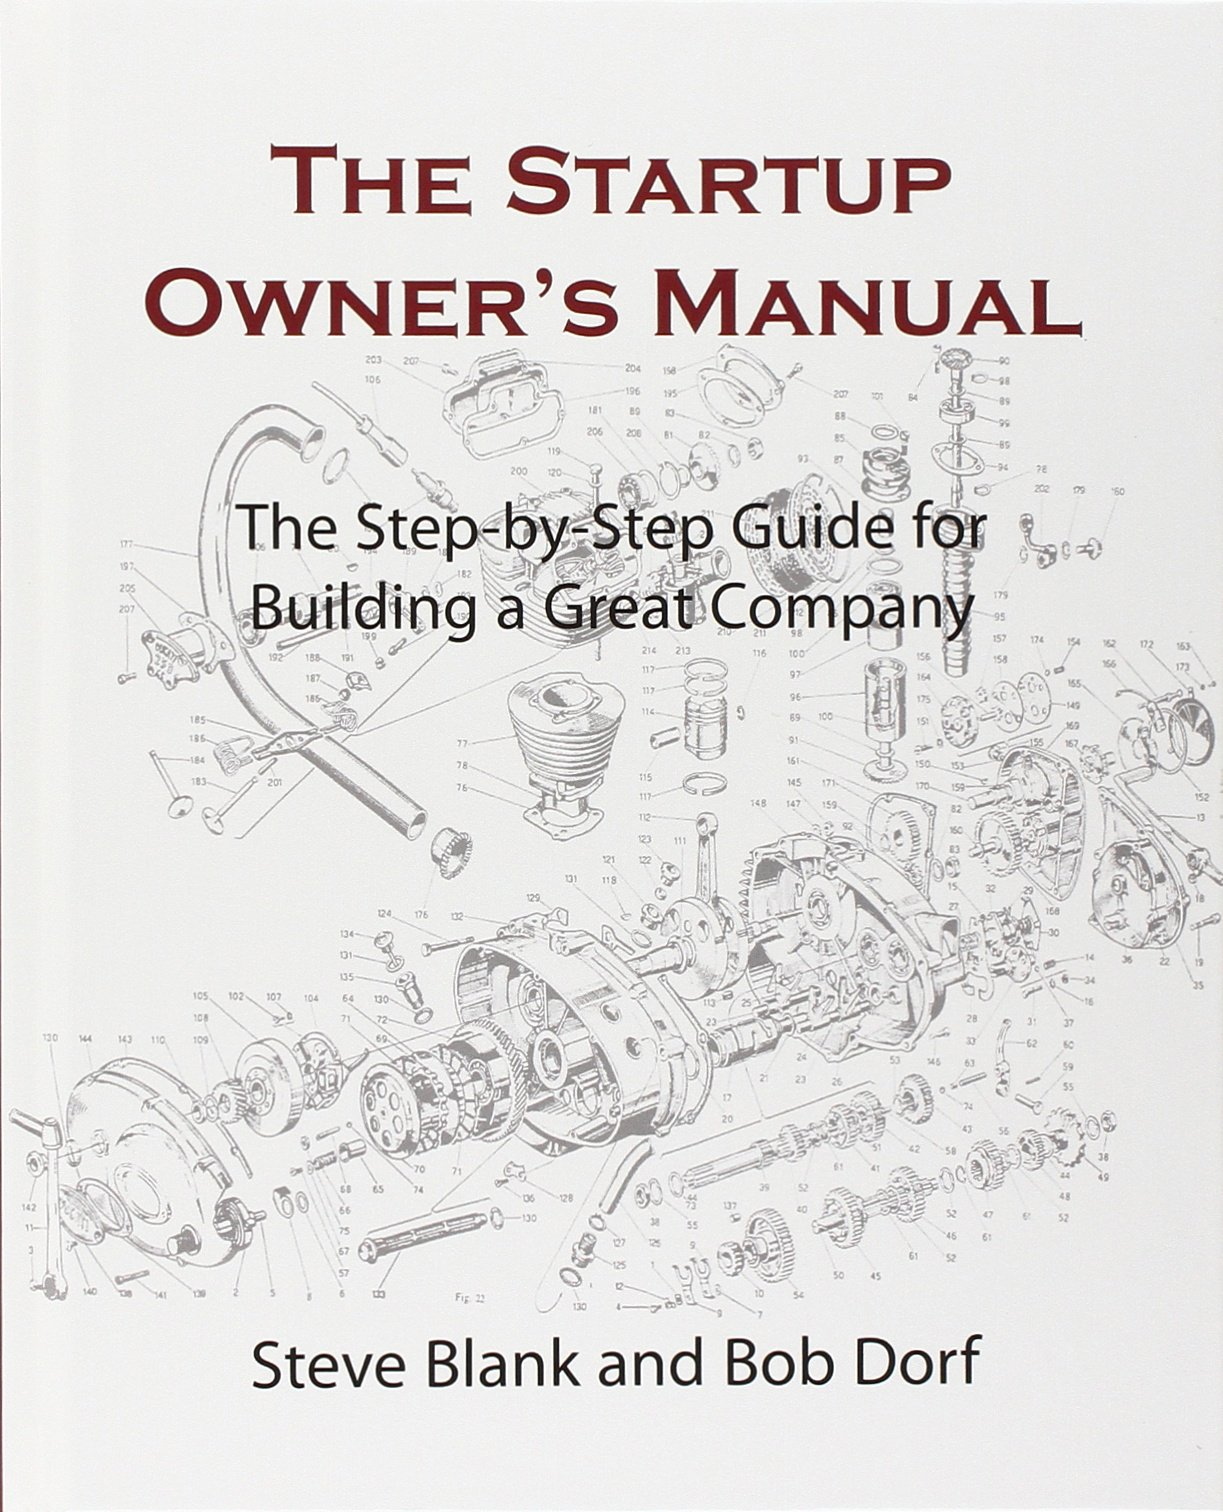 The Startup Owner's Manual (The Step-by-Step Guide for Building a Great Company)